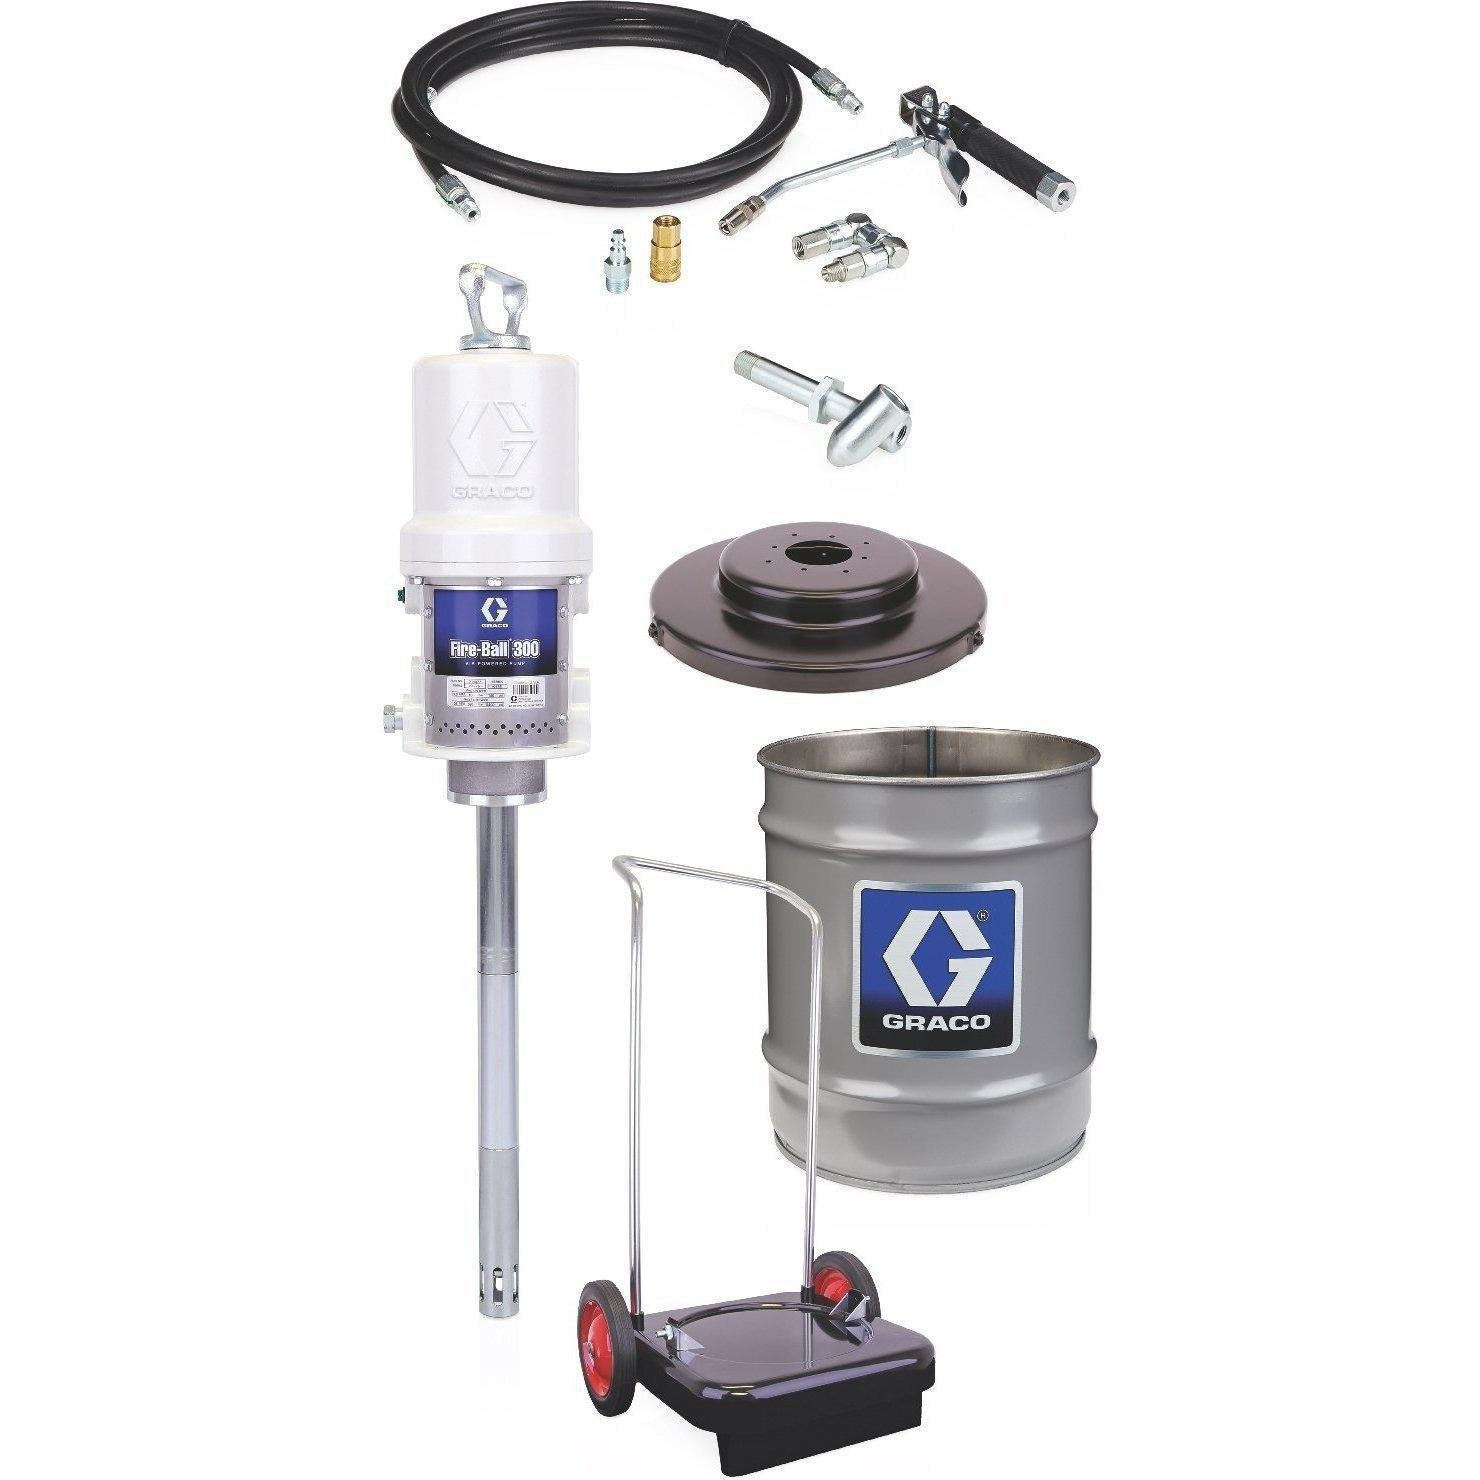 Graco 225773 Fireball 300 Series 50:1 25 To 50 Lb. Grease Pump - Portable Pail Dispenser Package - Fireball Equipment Ltd.